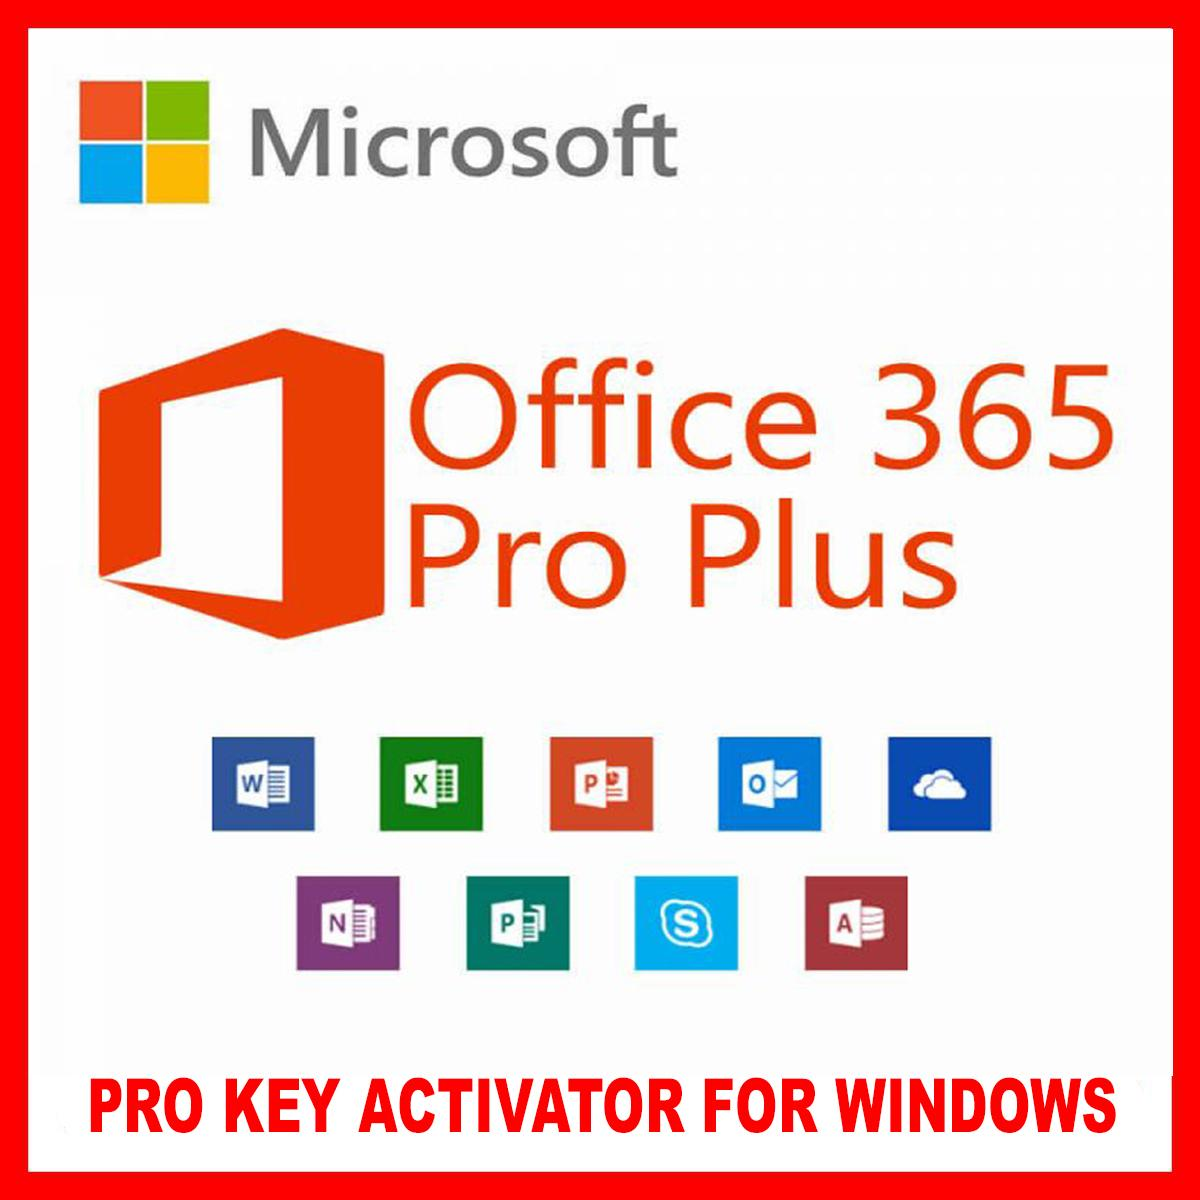 microsoft office 365 free download for windows 8.1 64 bit